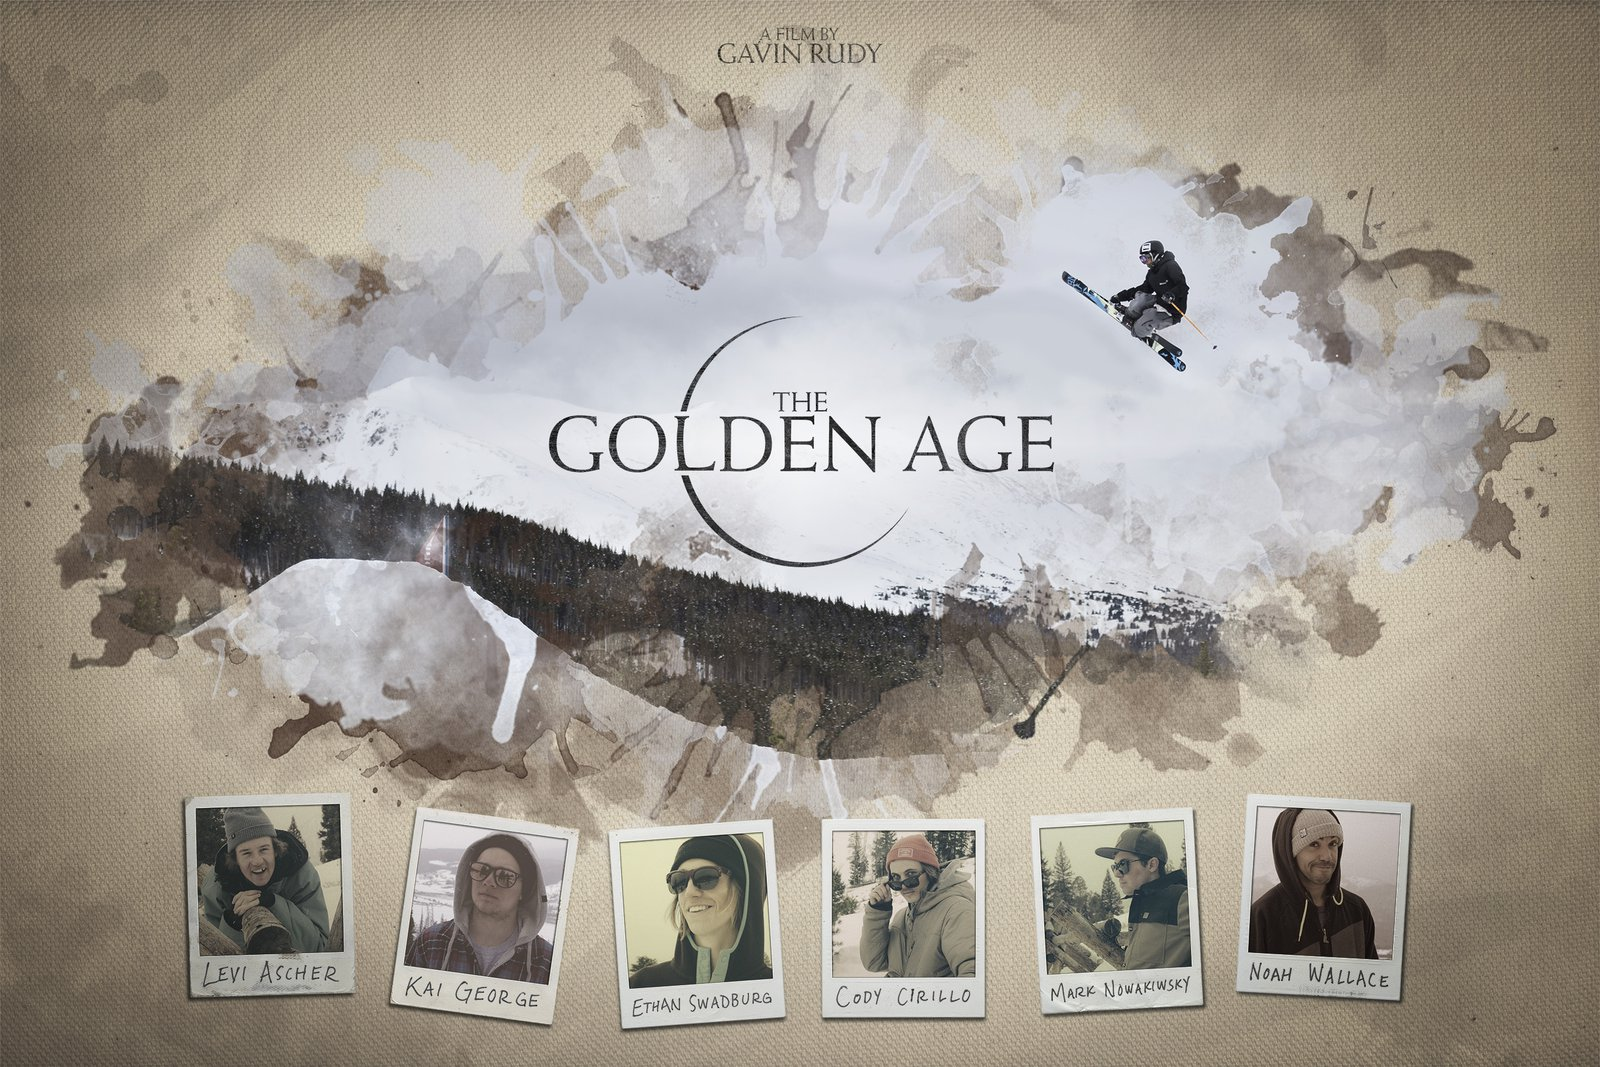 The Golden Age Poster